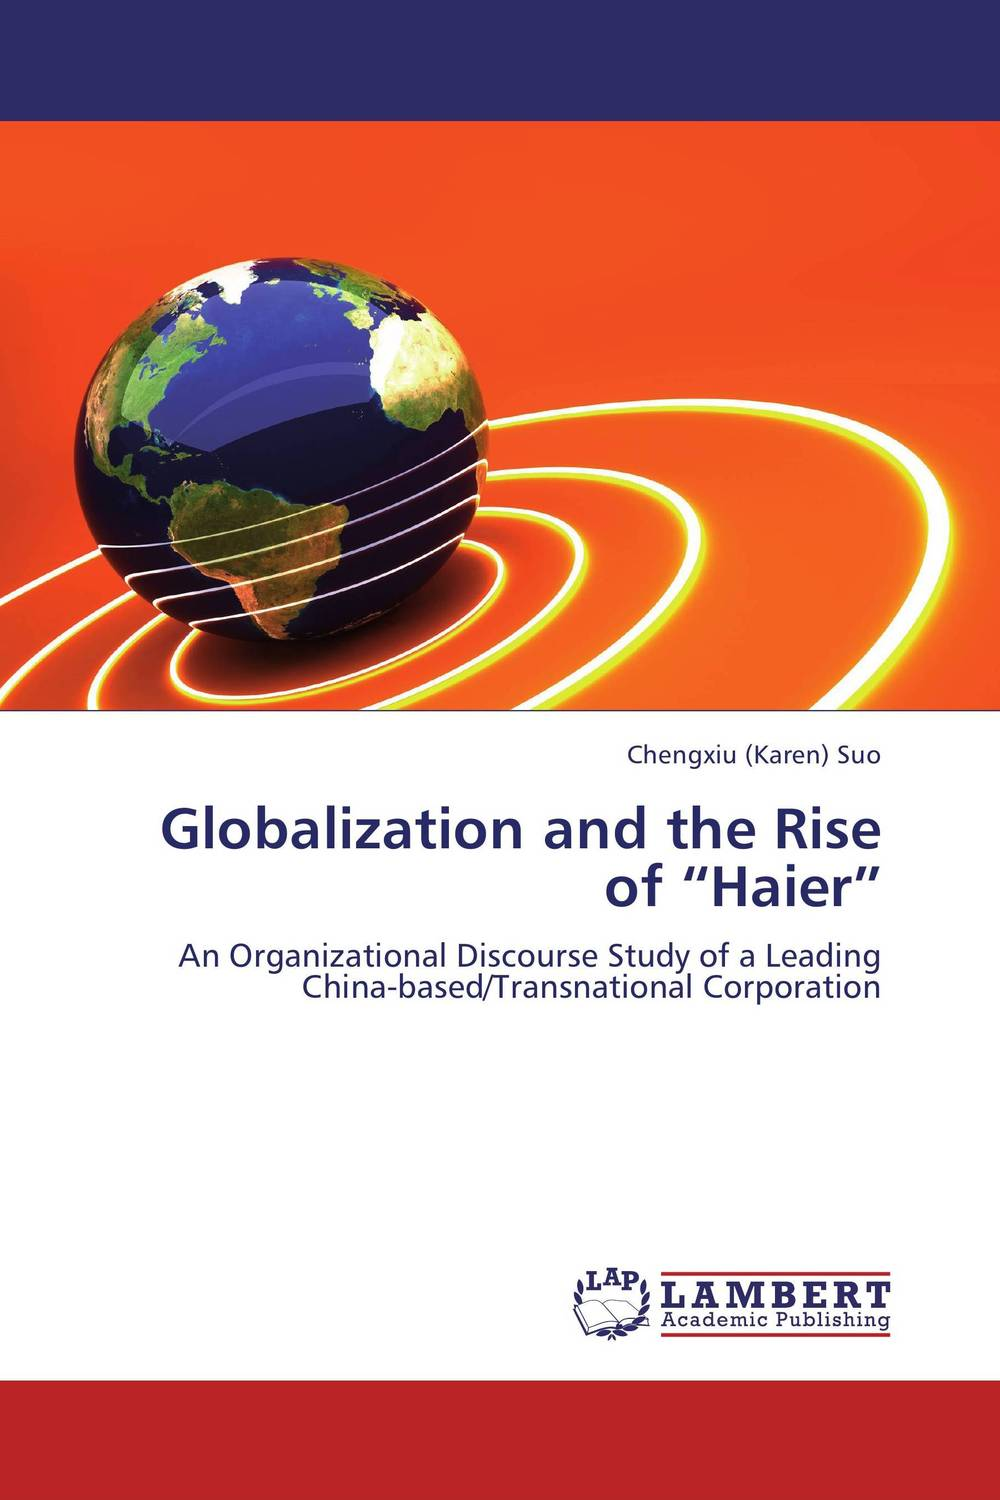 "Globalization and the Rise of ""Haier"" super high cost pt 31 lg 40 air complete cutter torches 5m straight"